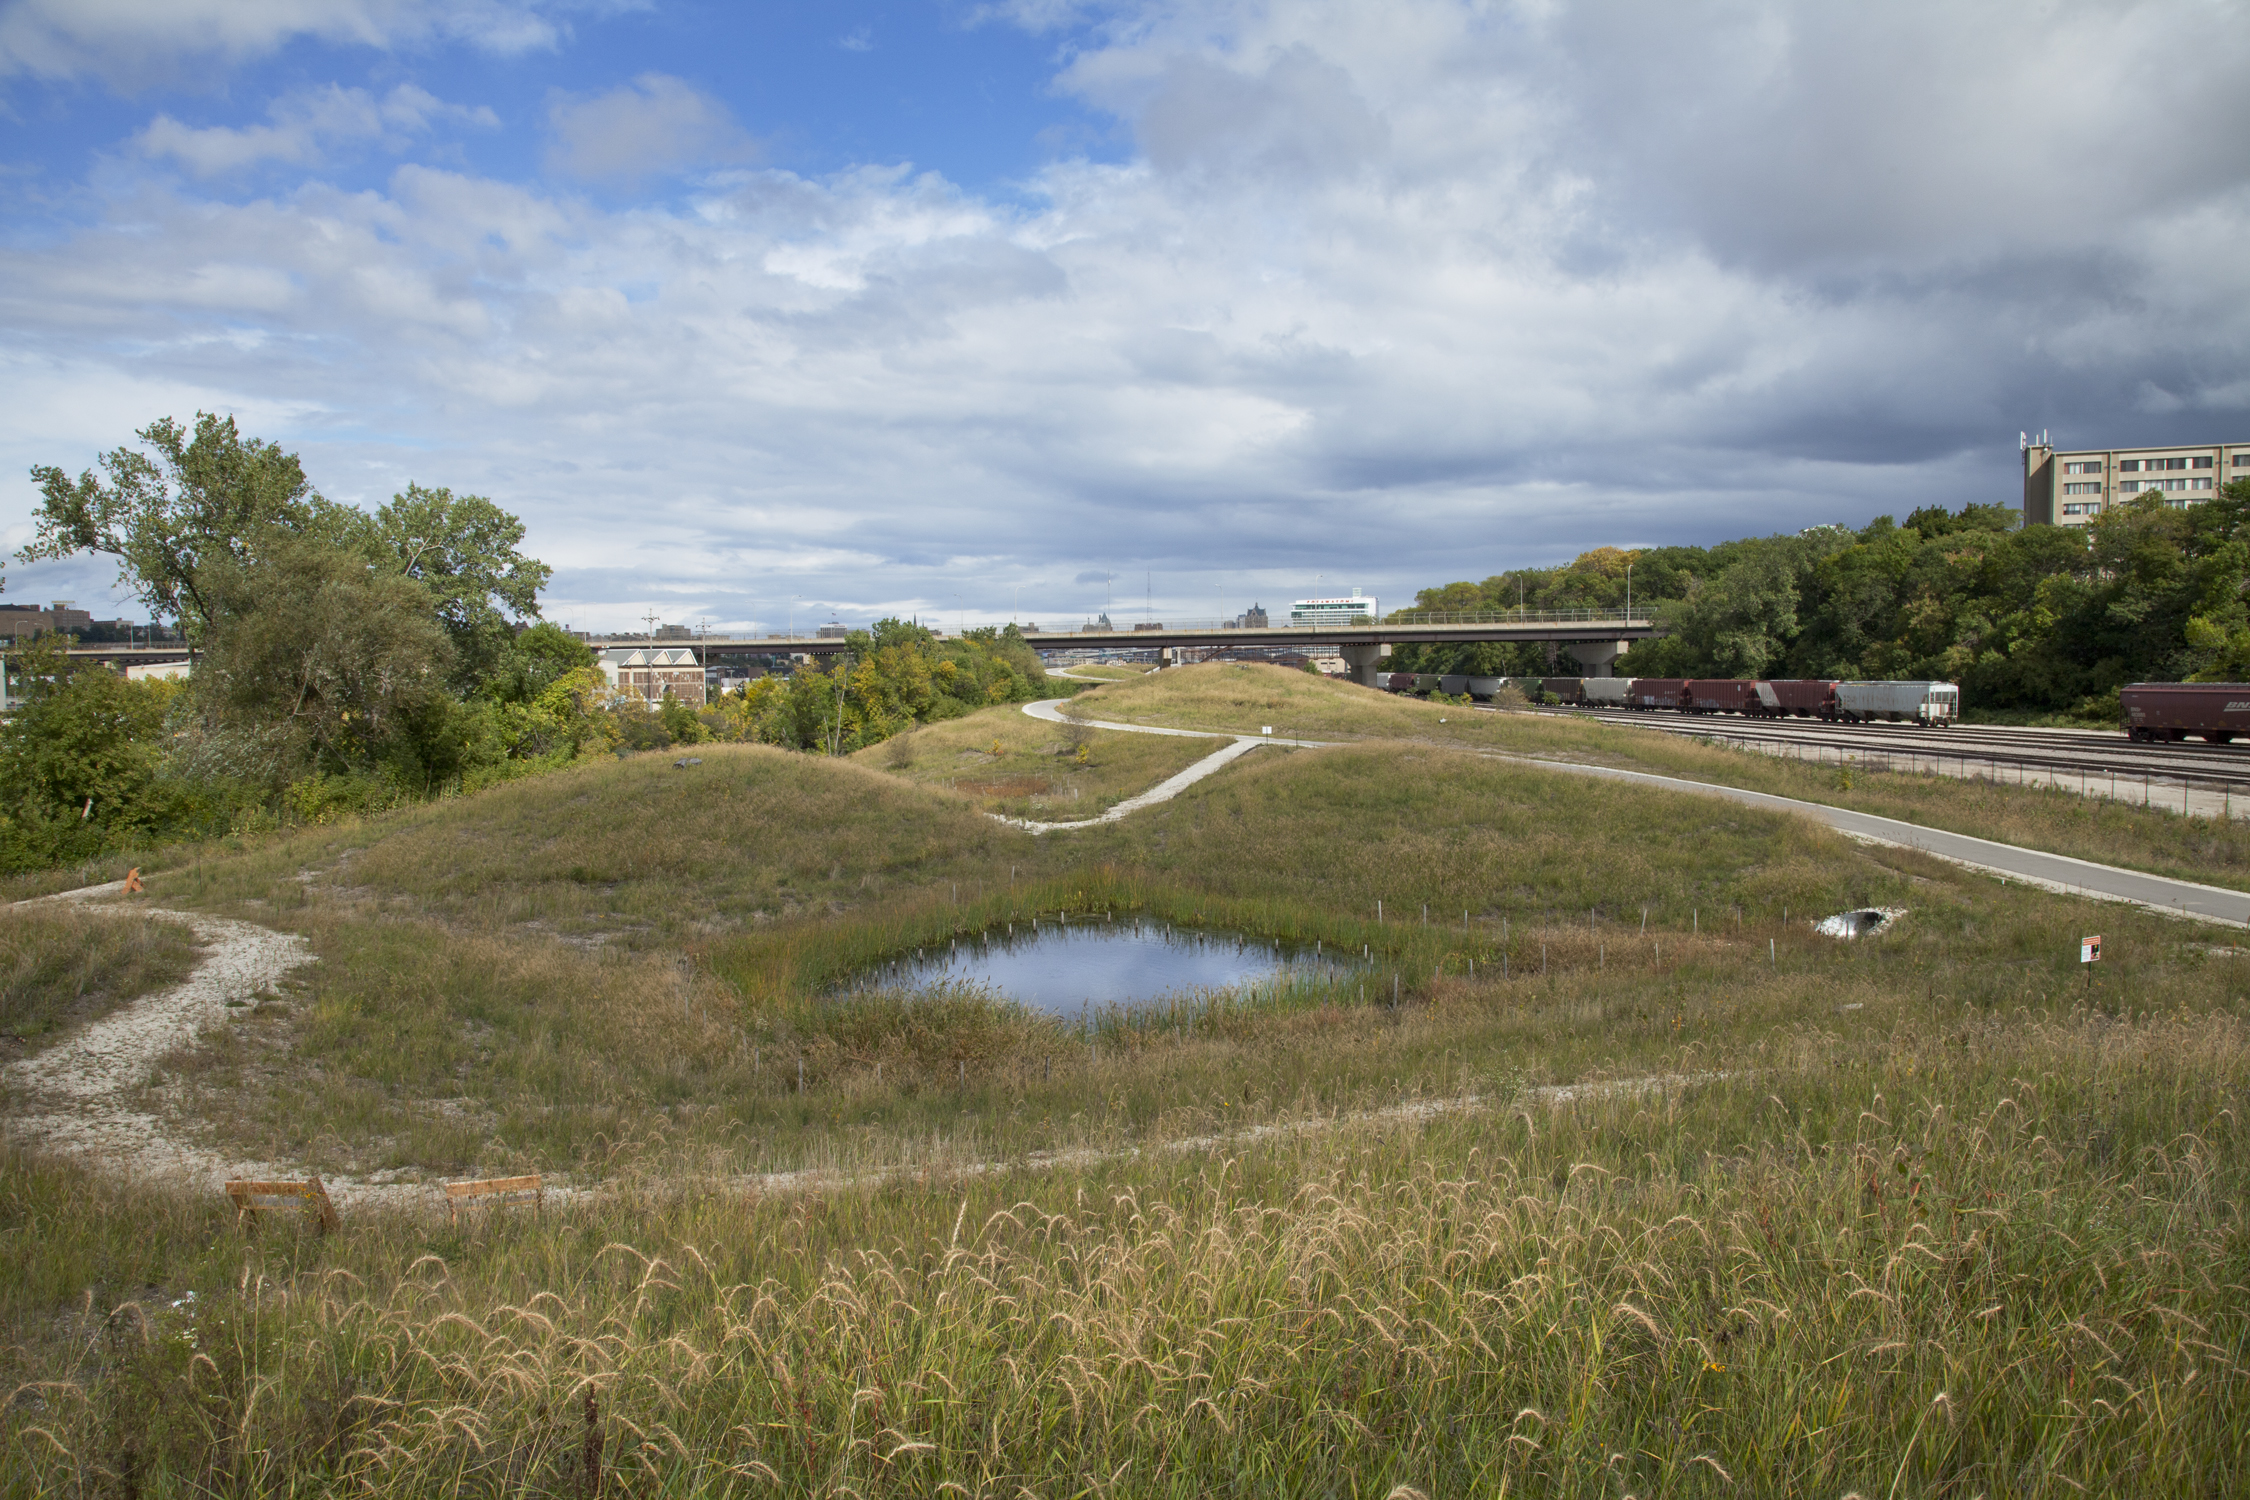 Natural Stormwater Filtration : Swales (Photo: Eddee Daniel)